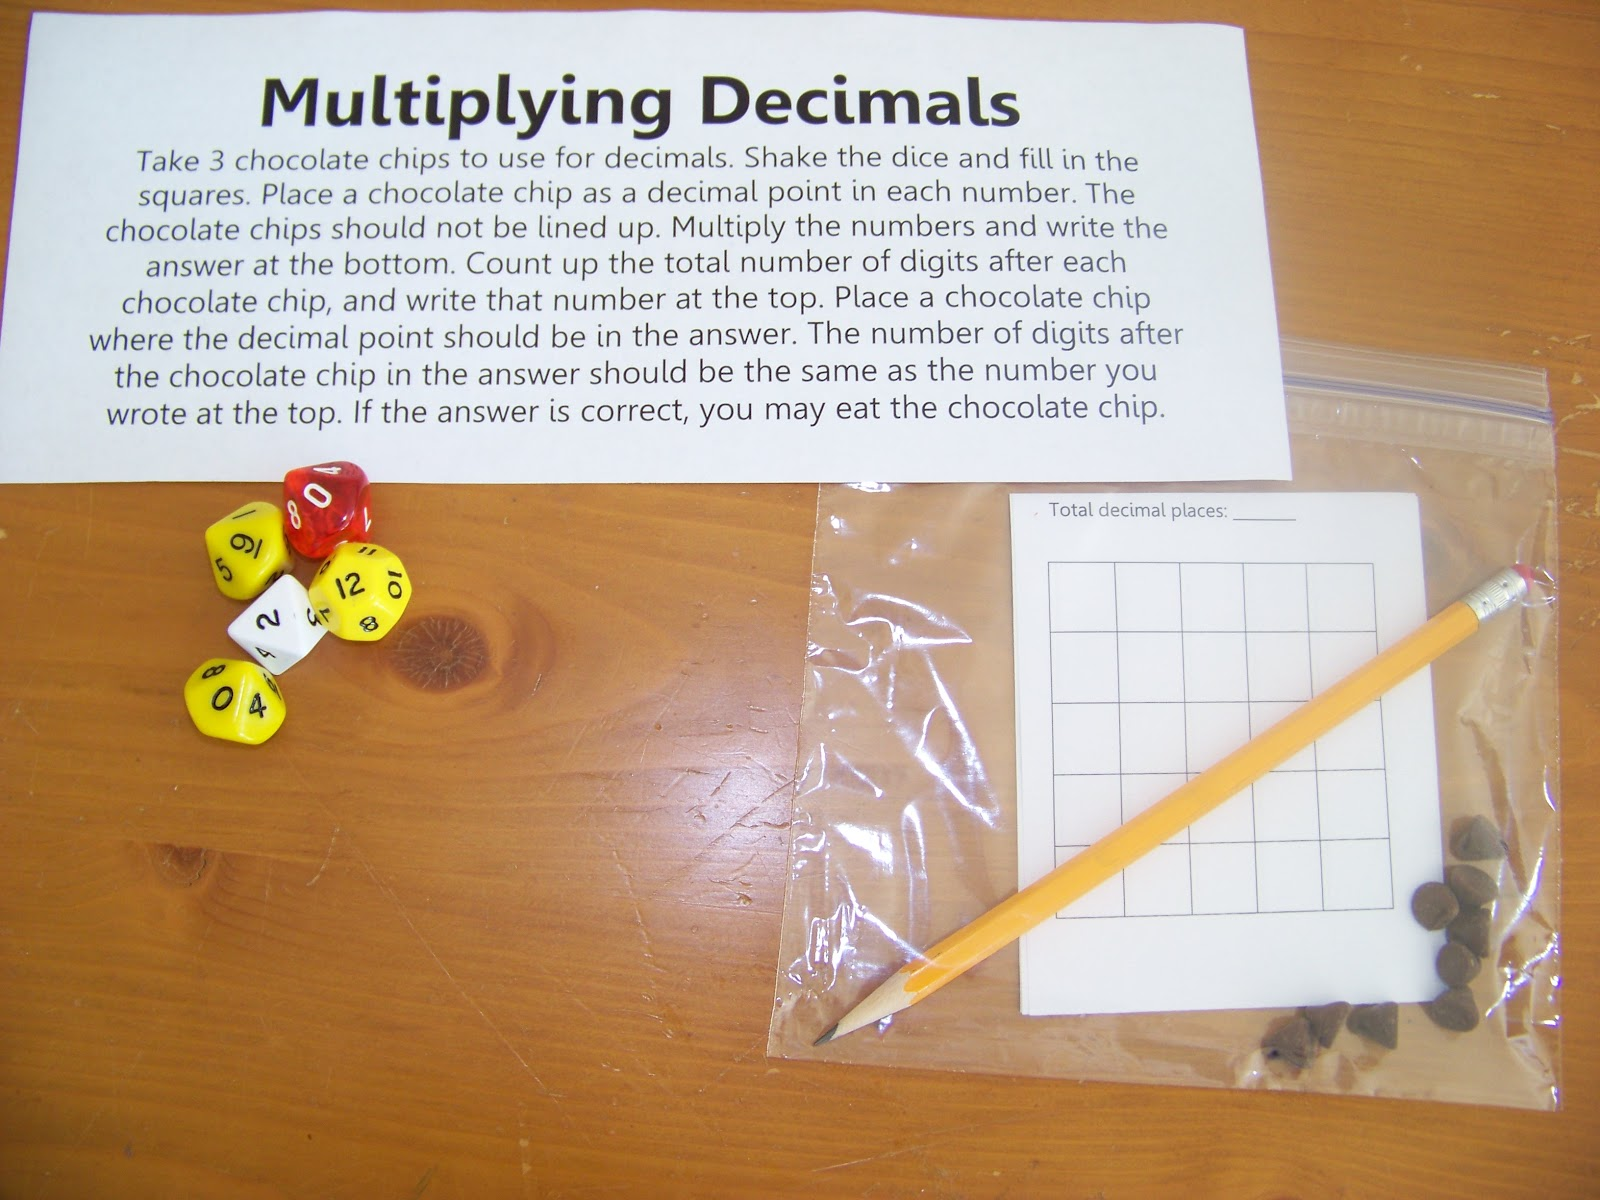 Our Fun Homeschool Chocolate Chip Decimal Multiplication